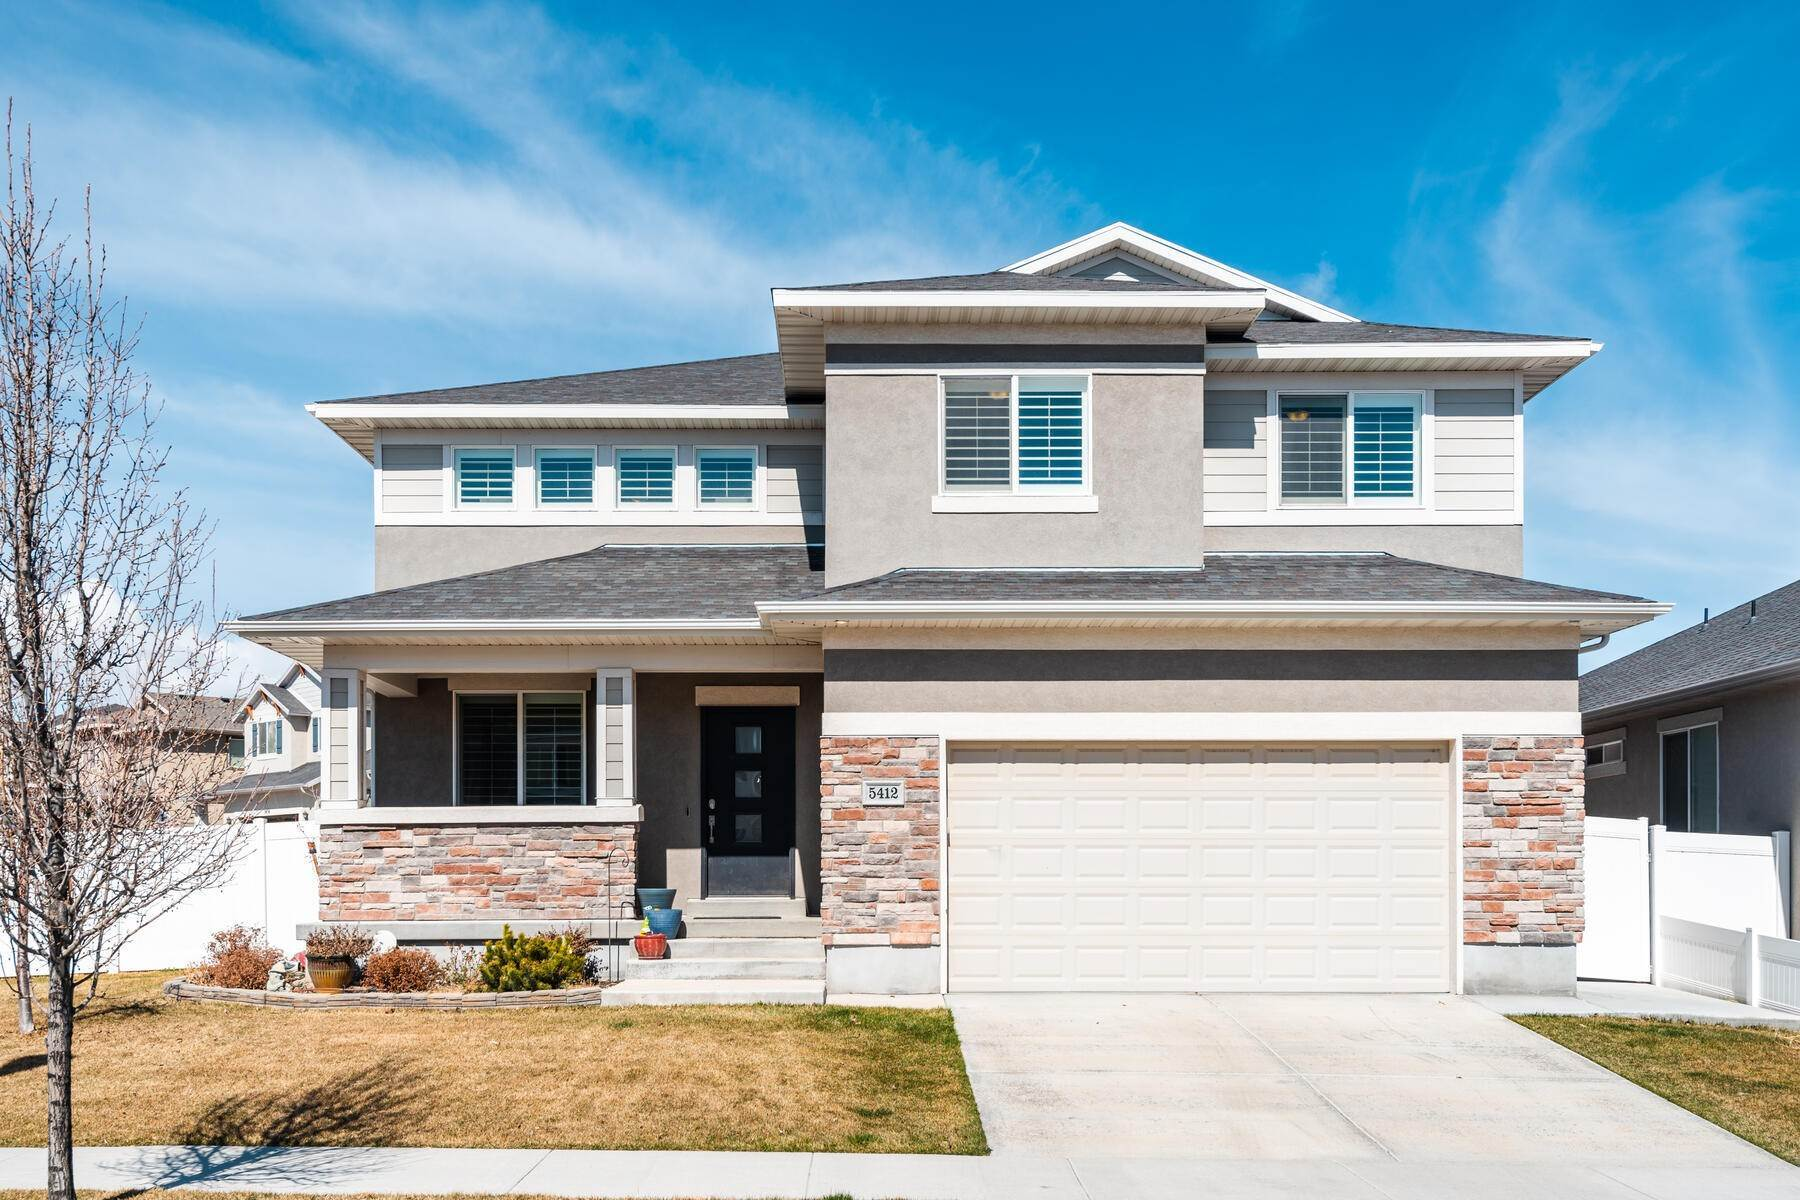 Single Family Homes for Sale at Convenience and Comfort in the Heart of Herriman 5412 W Moorfield Drive Herriman, Utah 84096 United States